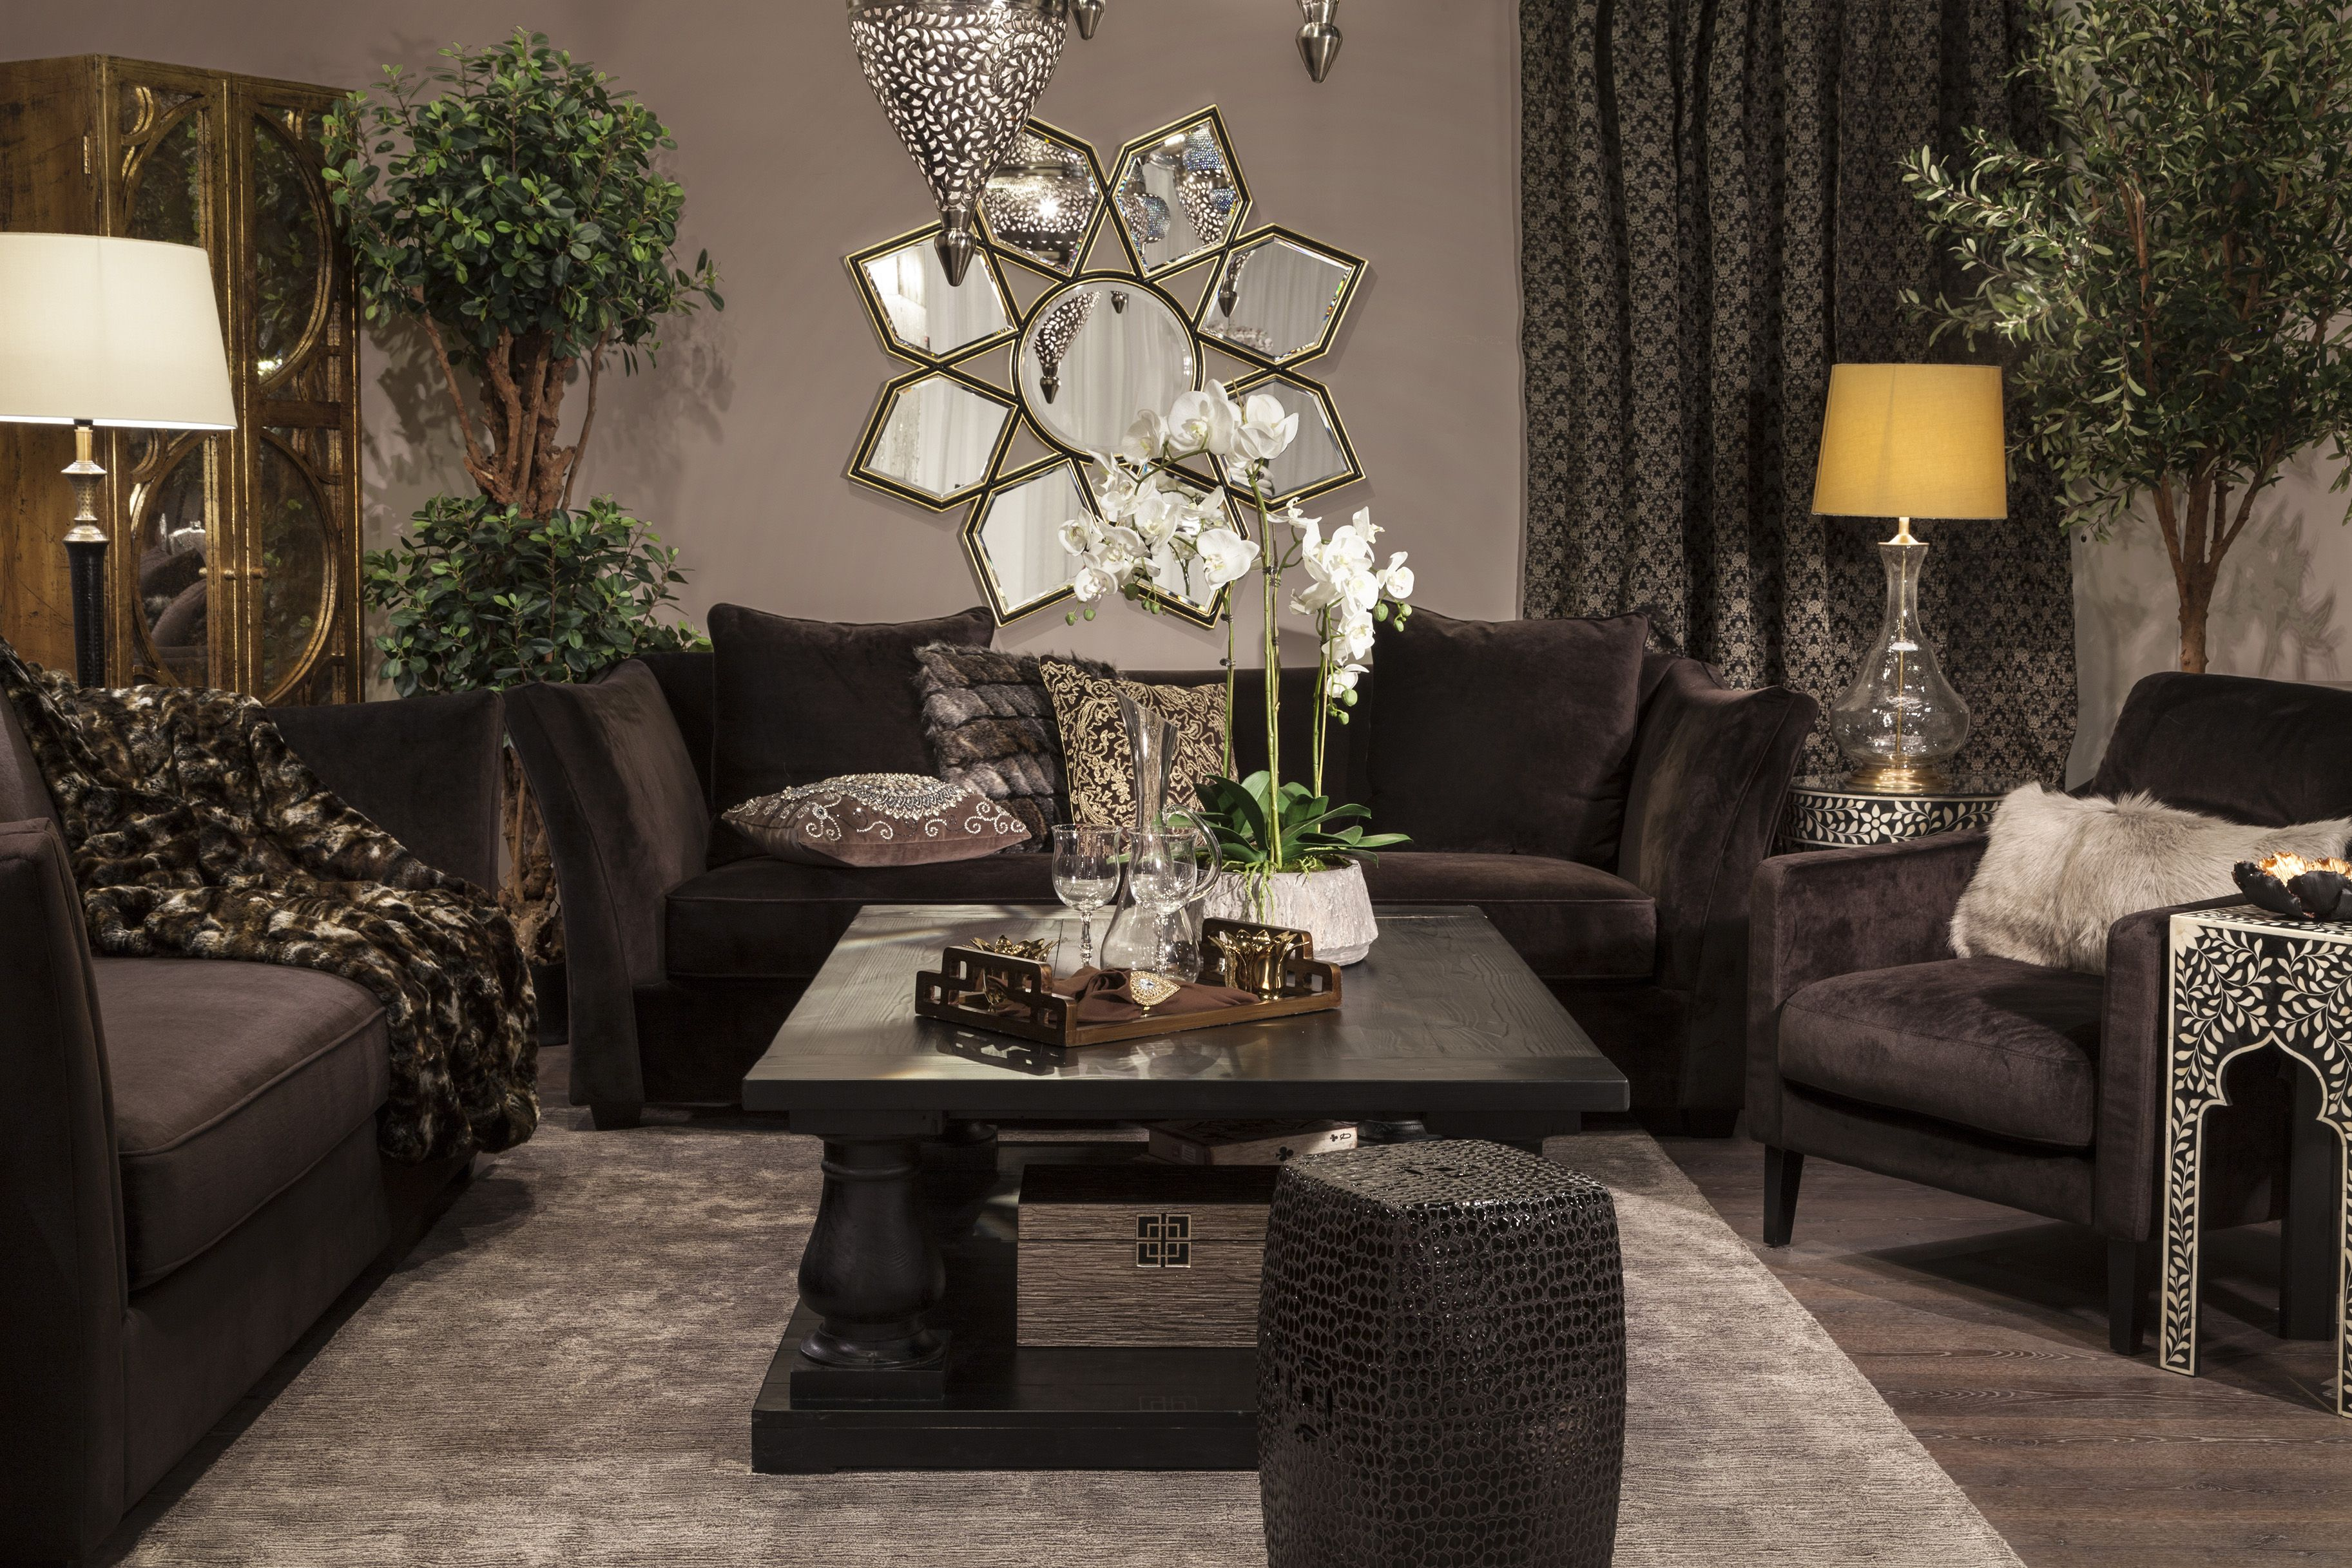 Living - Eclectic Ethnic Goes Edgy With An Eclectic Mix